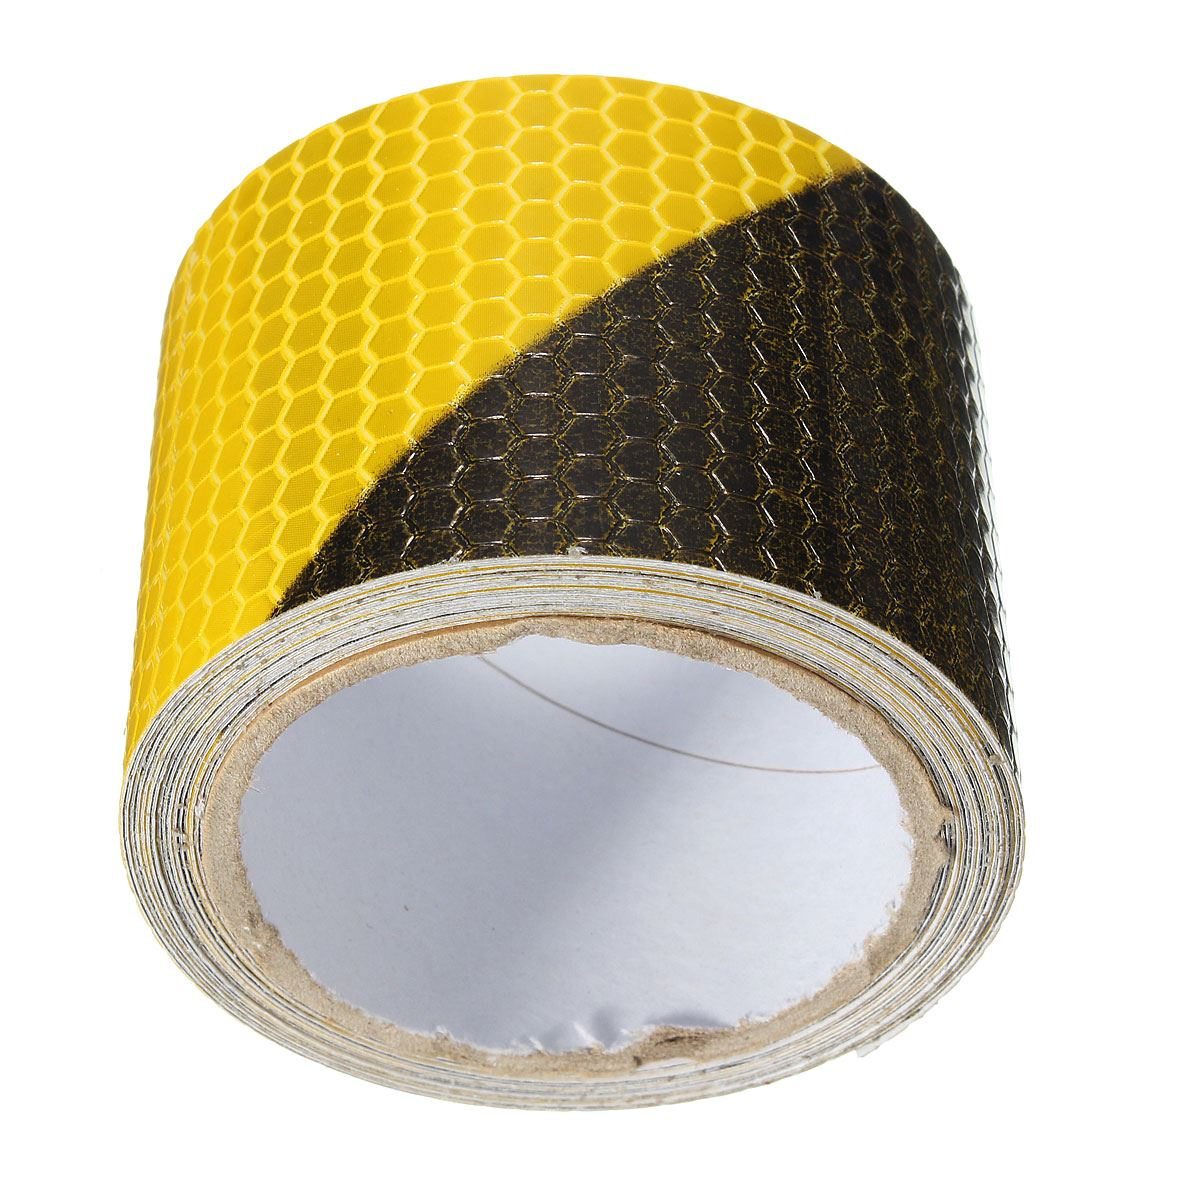 Black Yellow Reflective Safety Warning Conspicuity Tape Film Sticker 300cm x 5cm Workplace Safety Supplies Warning Tape 5sheets pack 10cm x 5cm holographic adhesive film fly tying laser rainbow materials sticker film flash tape for fly lure fishing